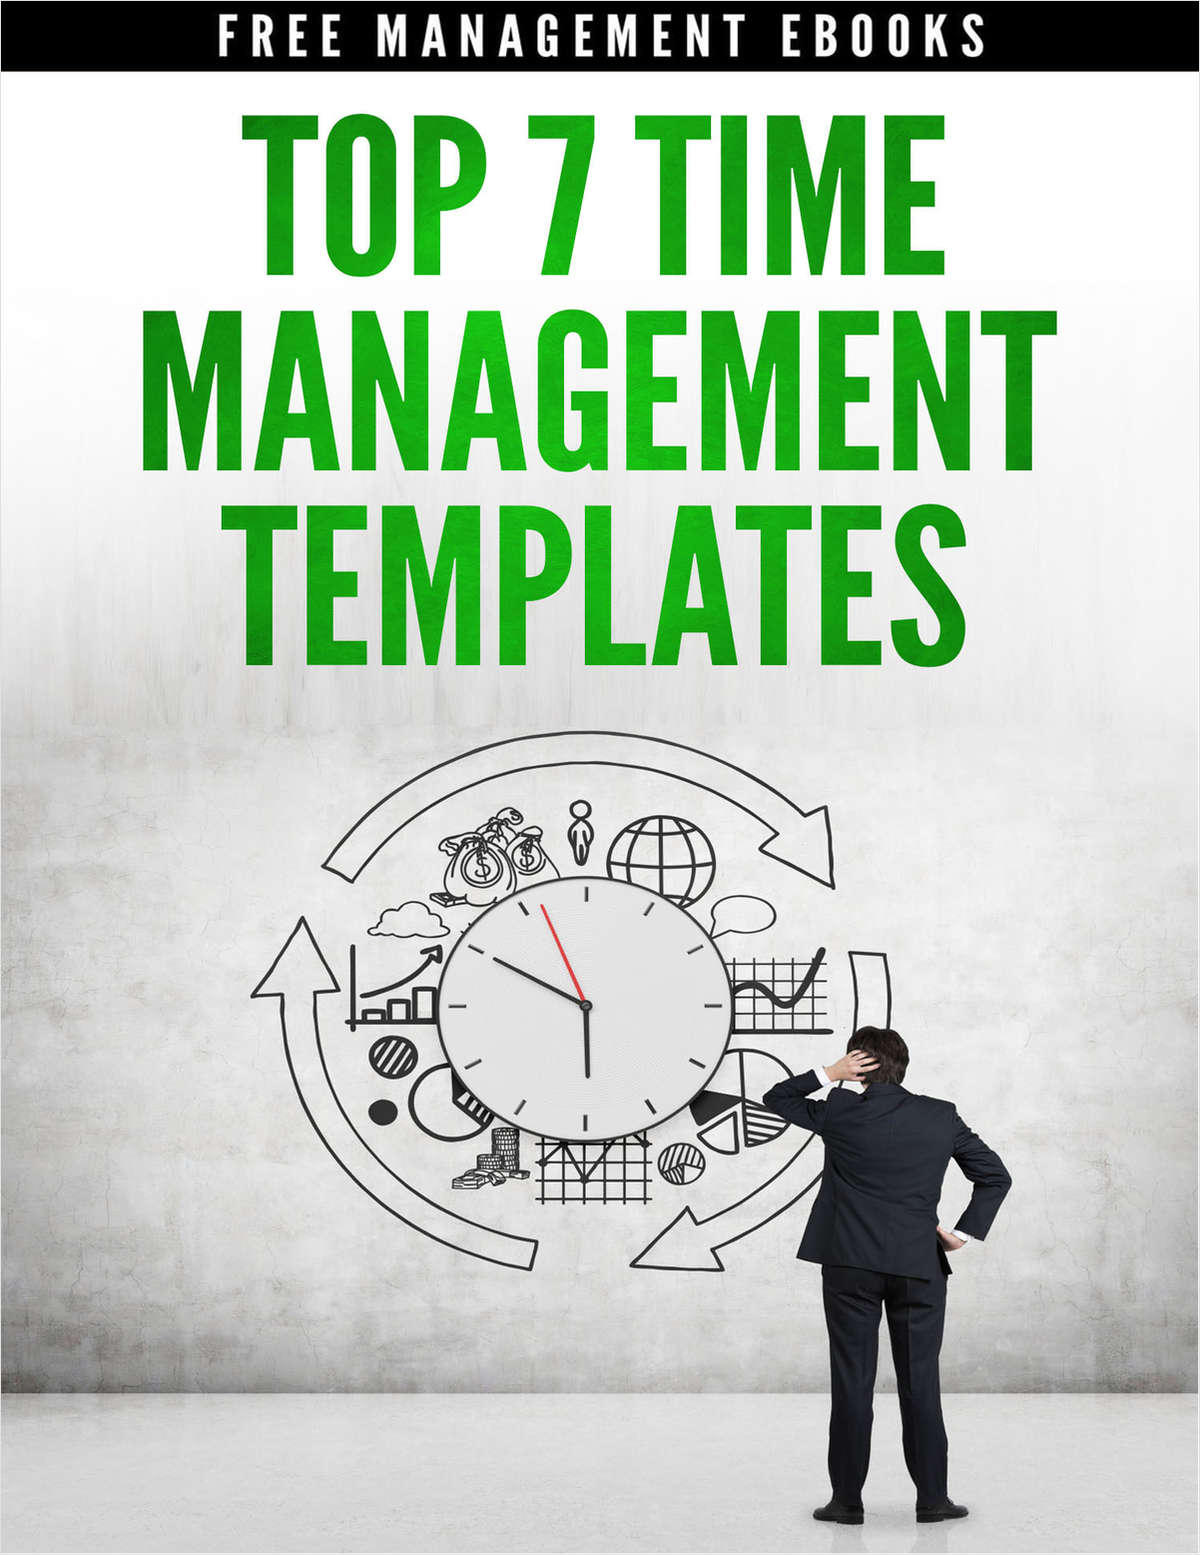 Top 7 Time Management Templates